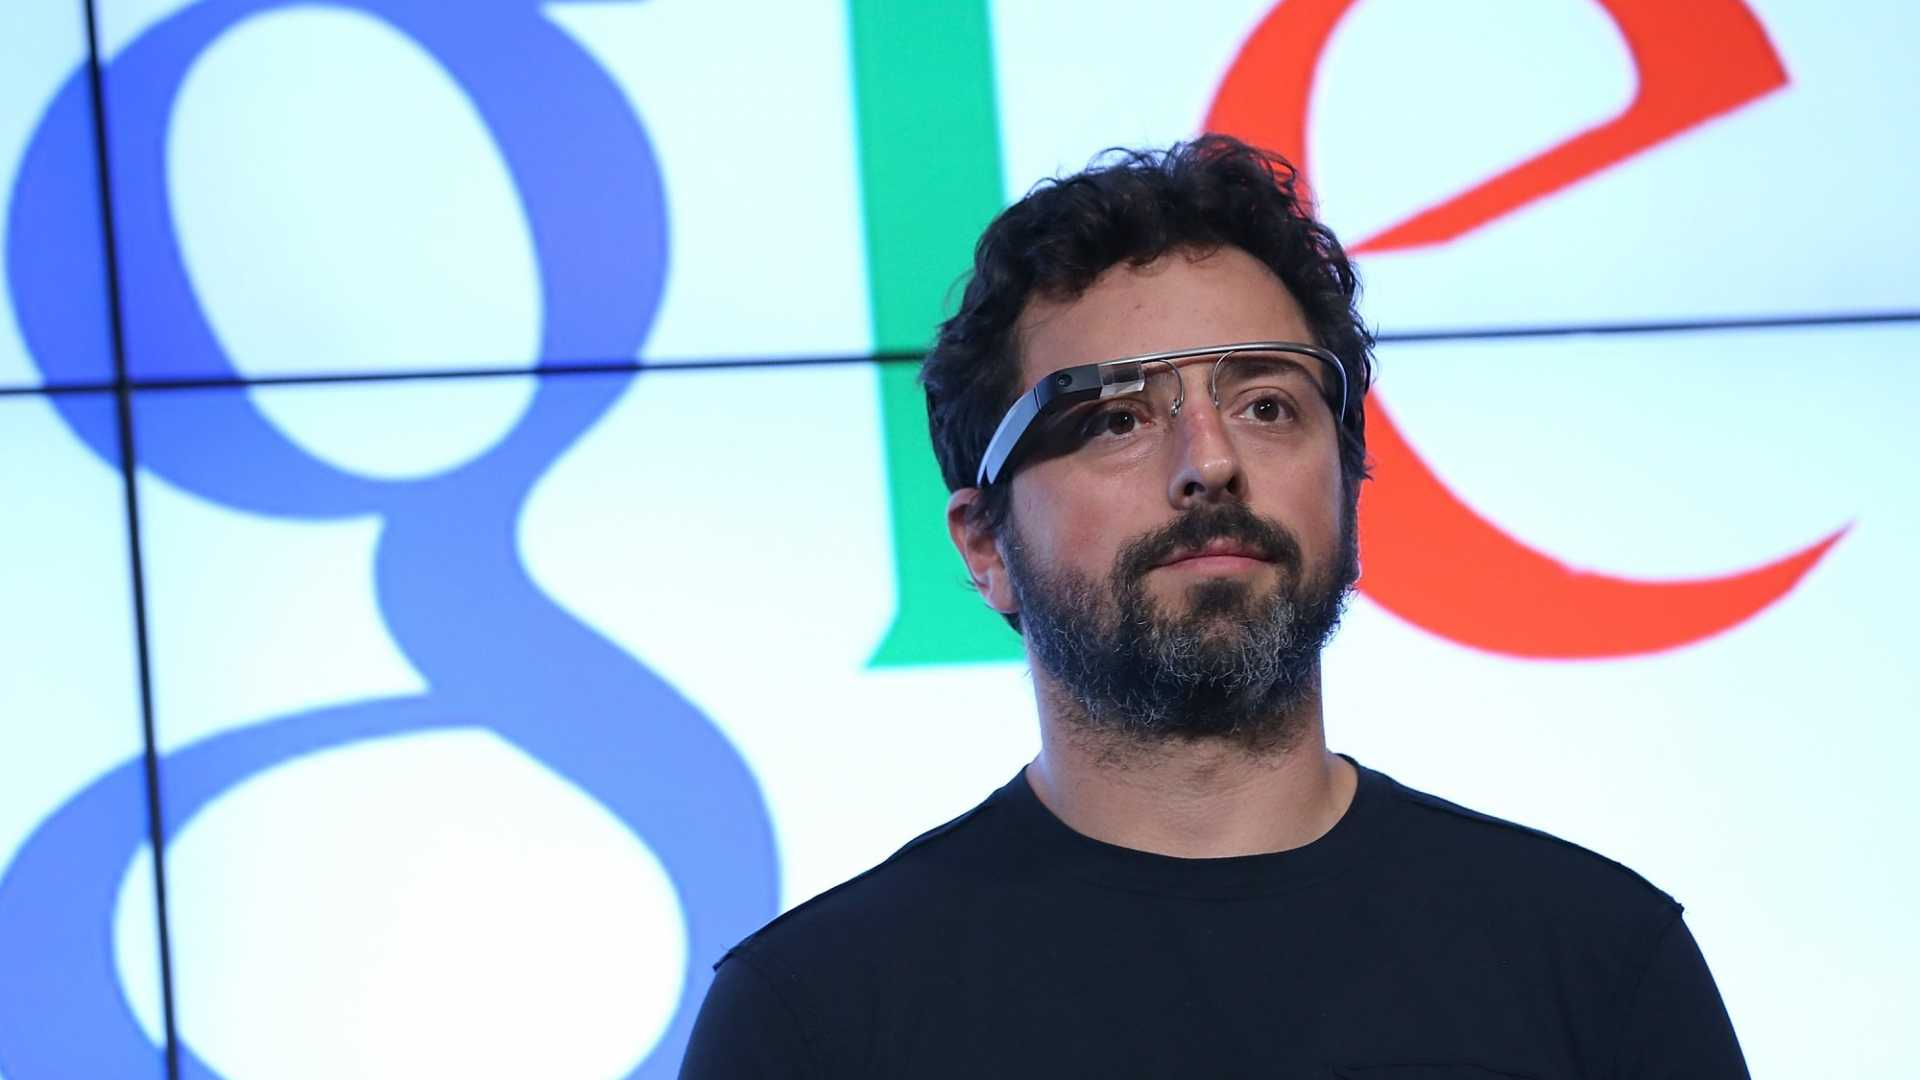 Sergey Brin Uses This Trick to Get the Most From People He Interviews